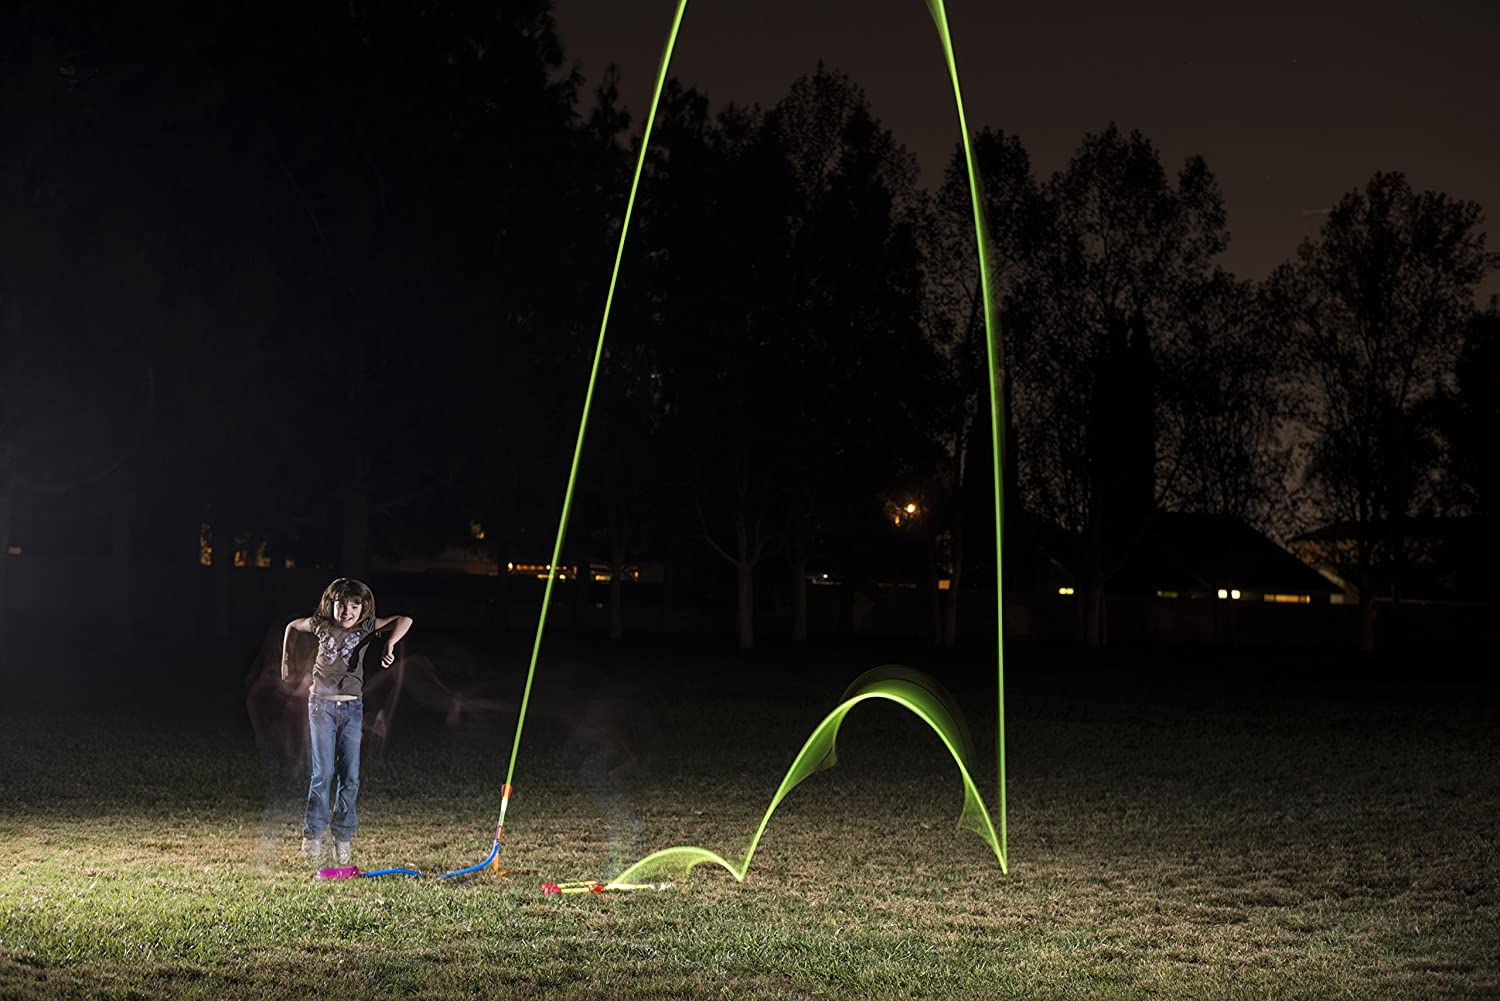 3 Rockets Stomp Rocket Jr Glow Rocket Refill Pack Outdoor Rocket Toy Gift for Boys and Girls- Ages 3 Years and Up